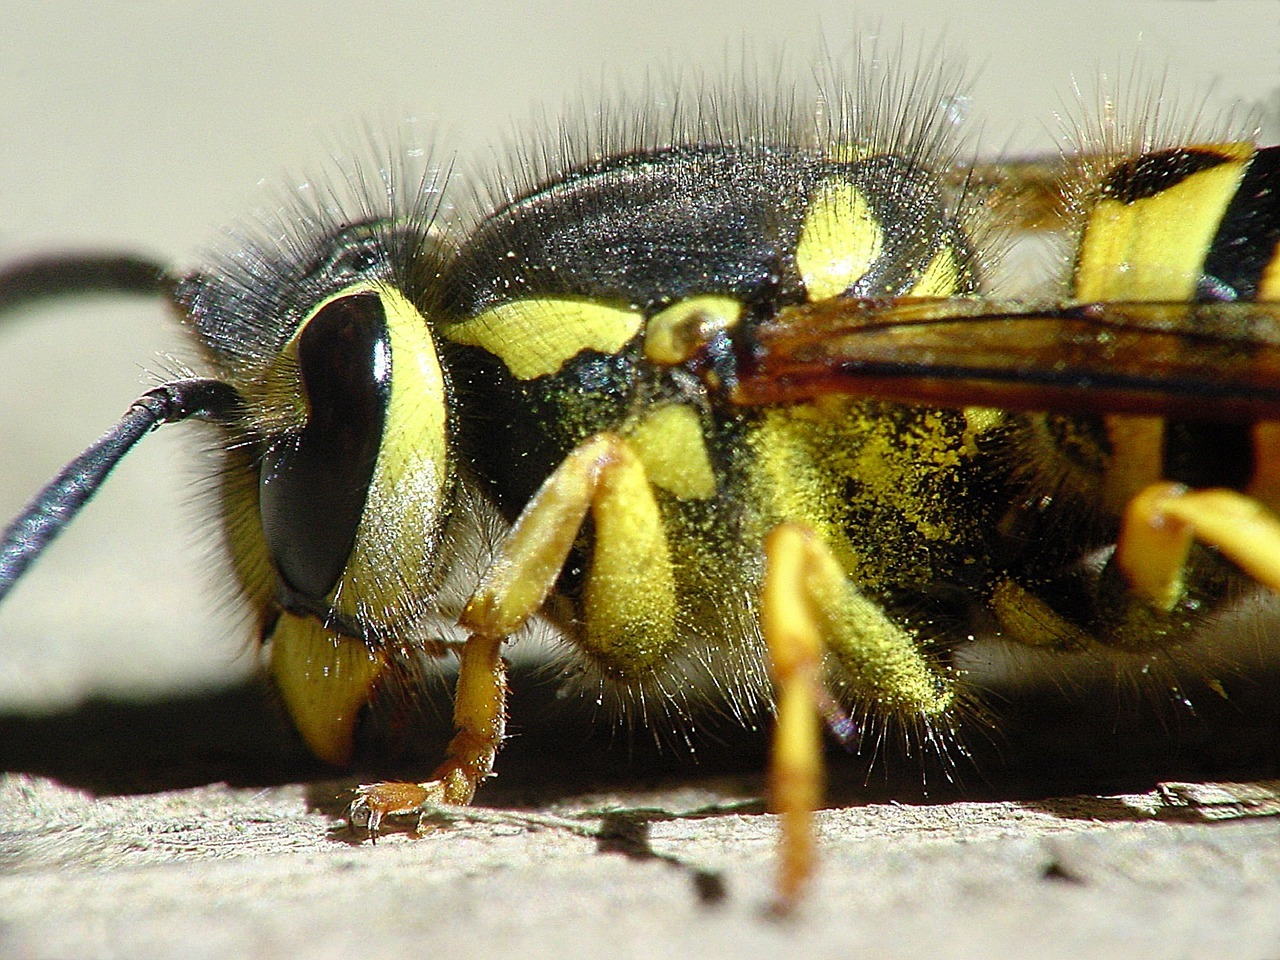 a wasp on the ground